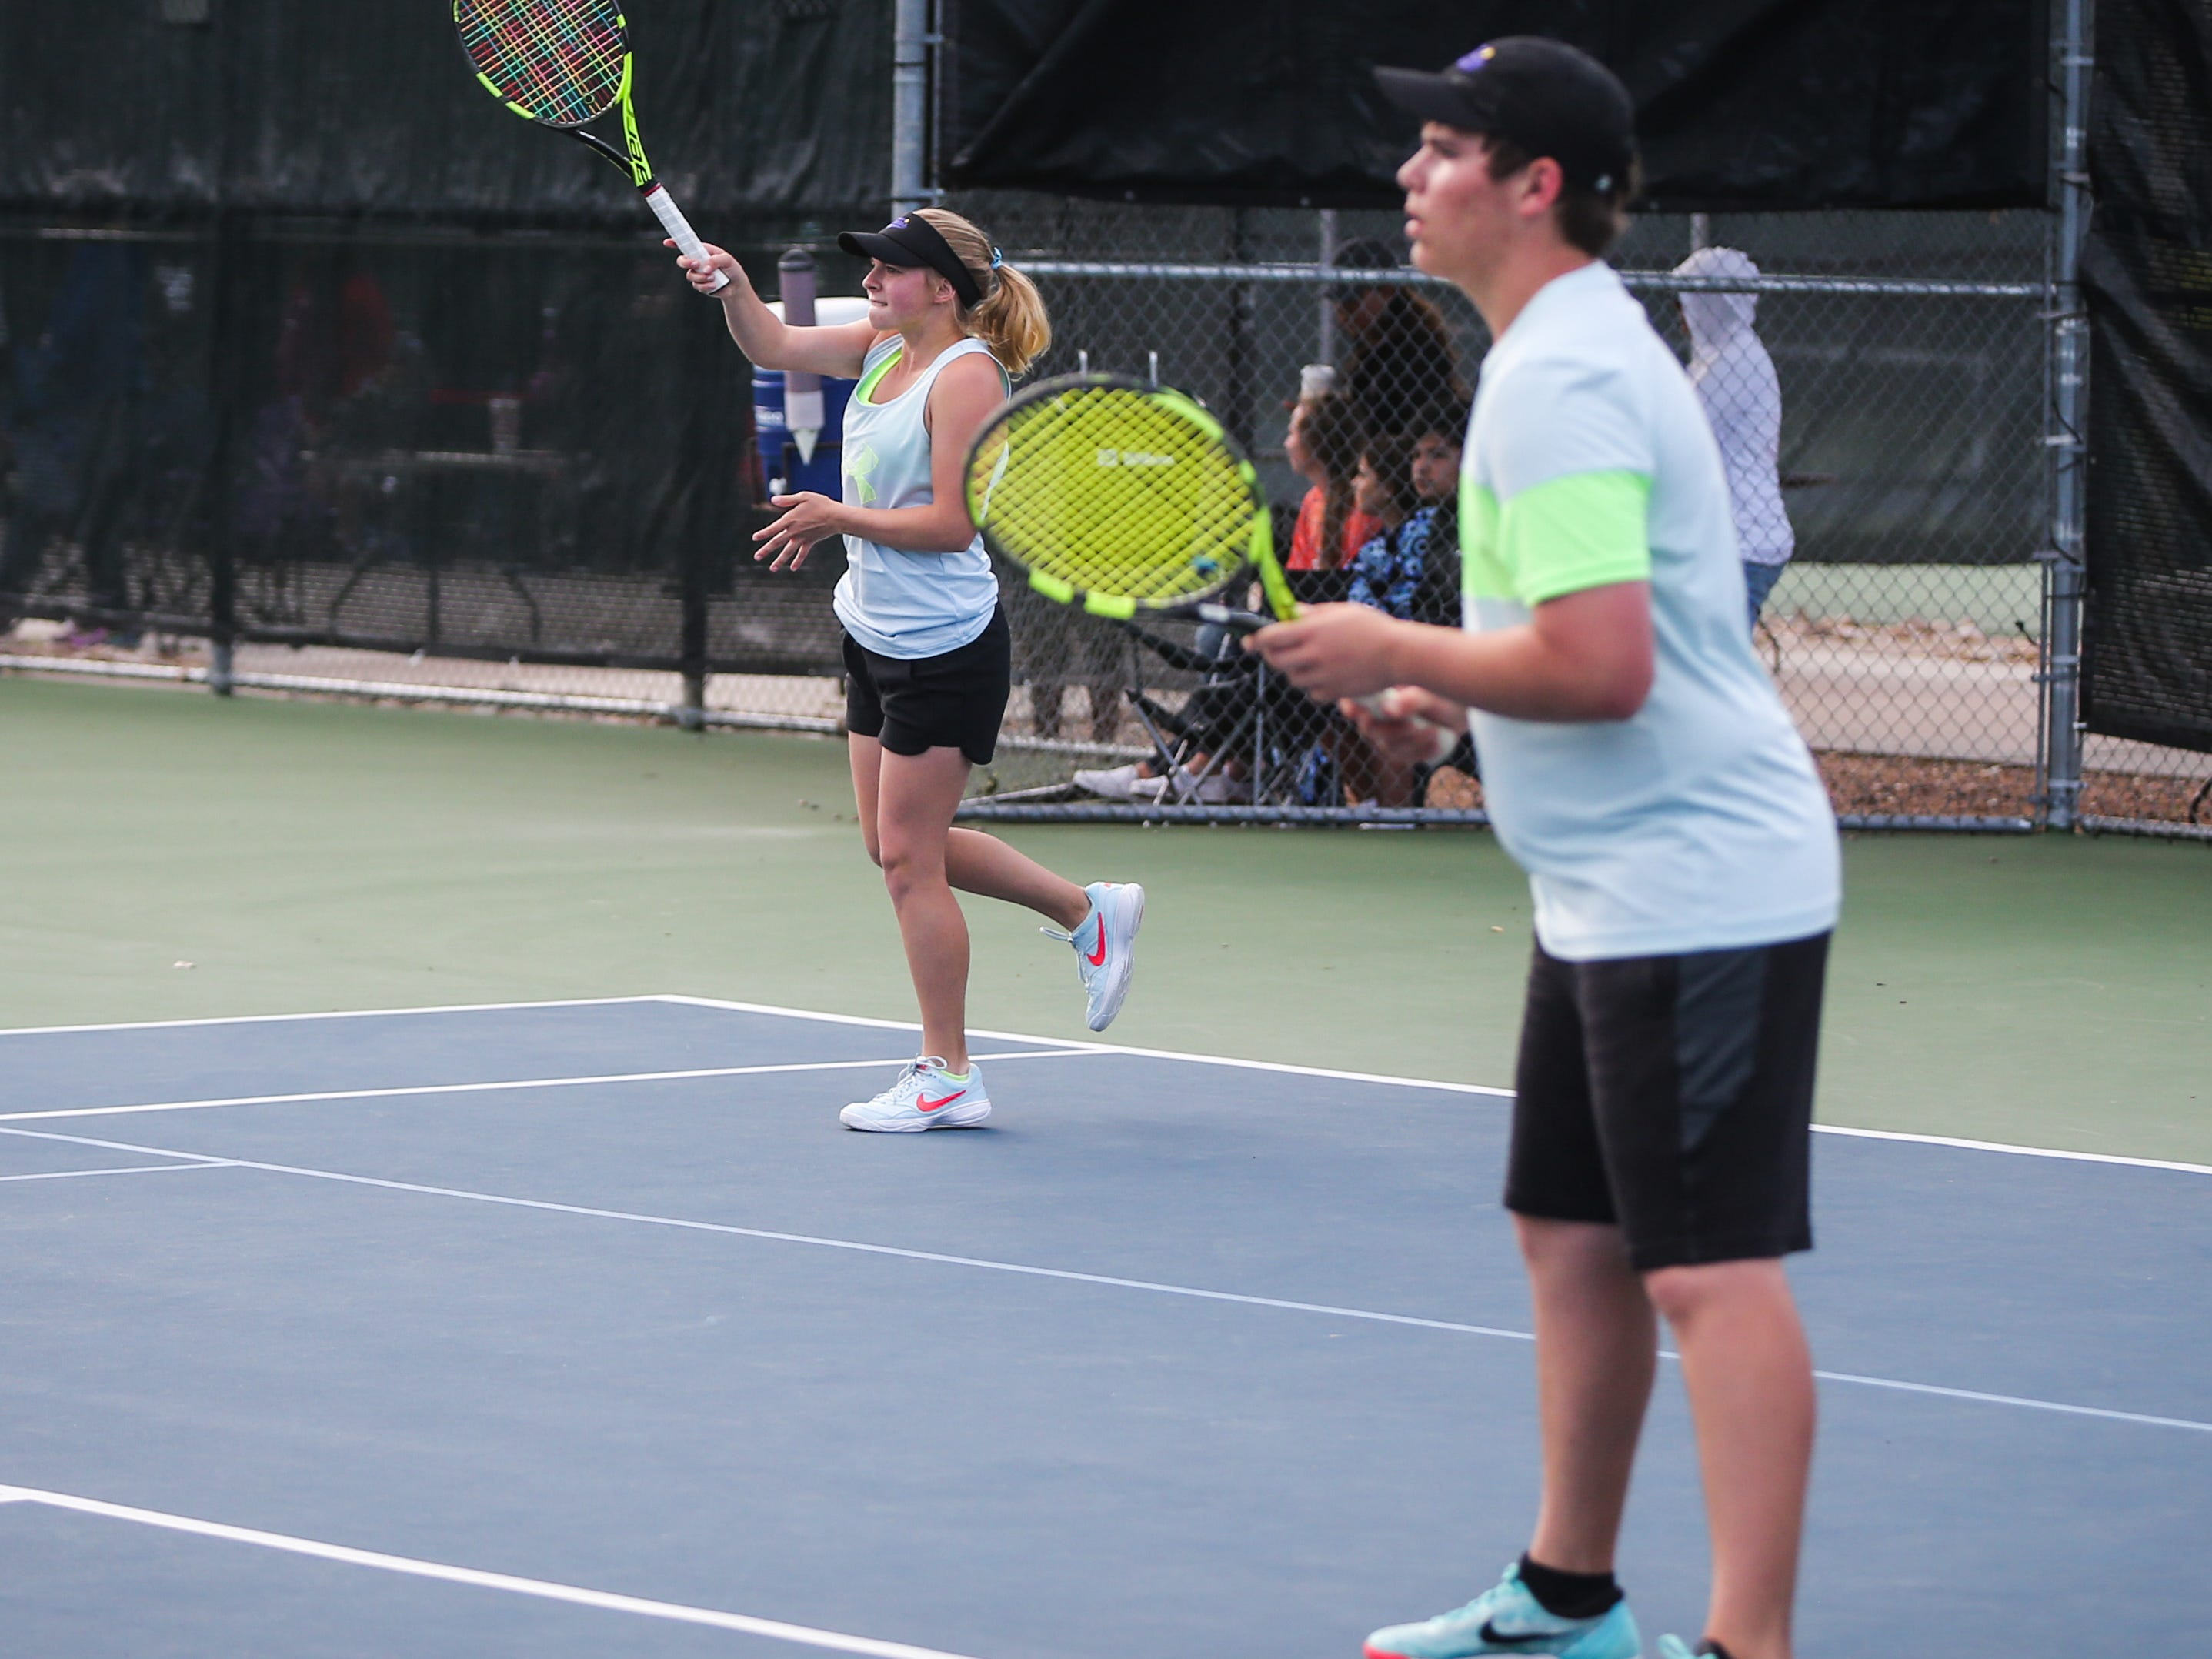 Sterling City's Brooke Rauch and Dain Copeland play during the mixed doubles region II -1A tennis championship Thursday, April 18, 2019, at Bentwood Country Club.